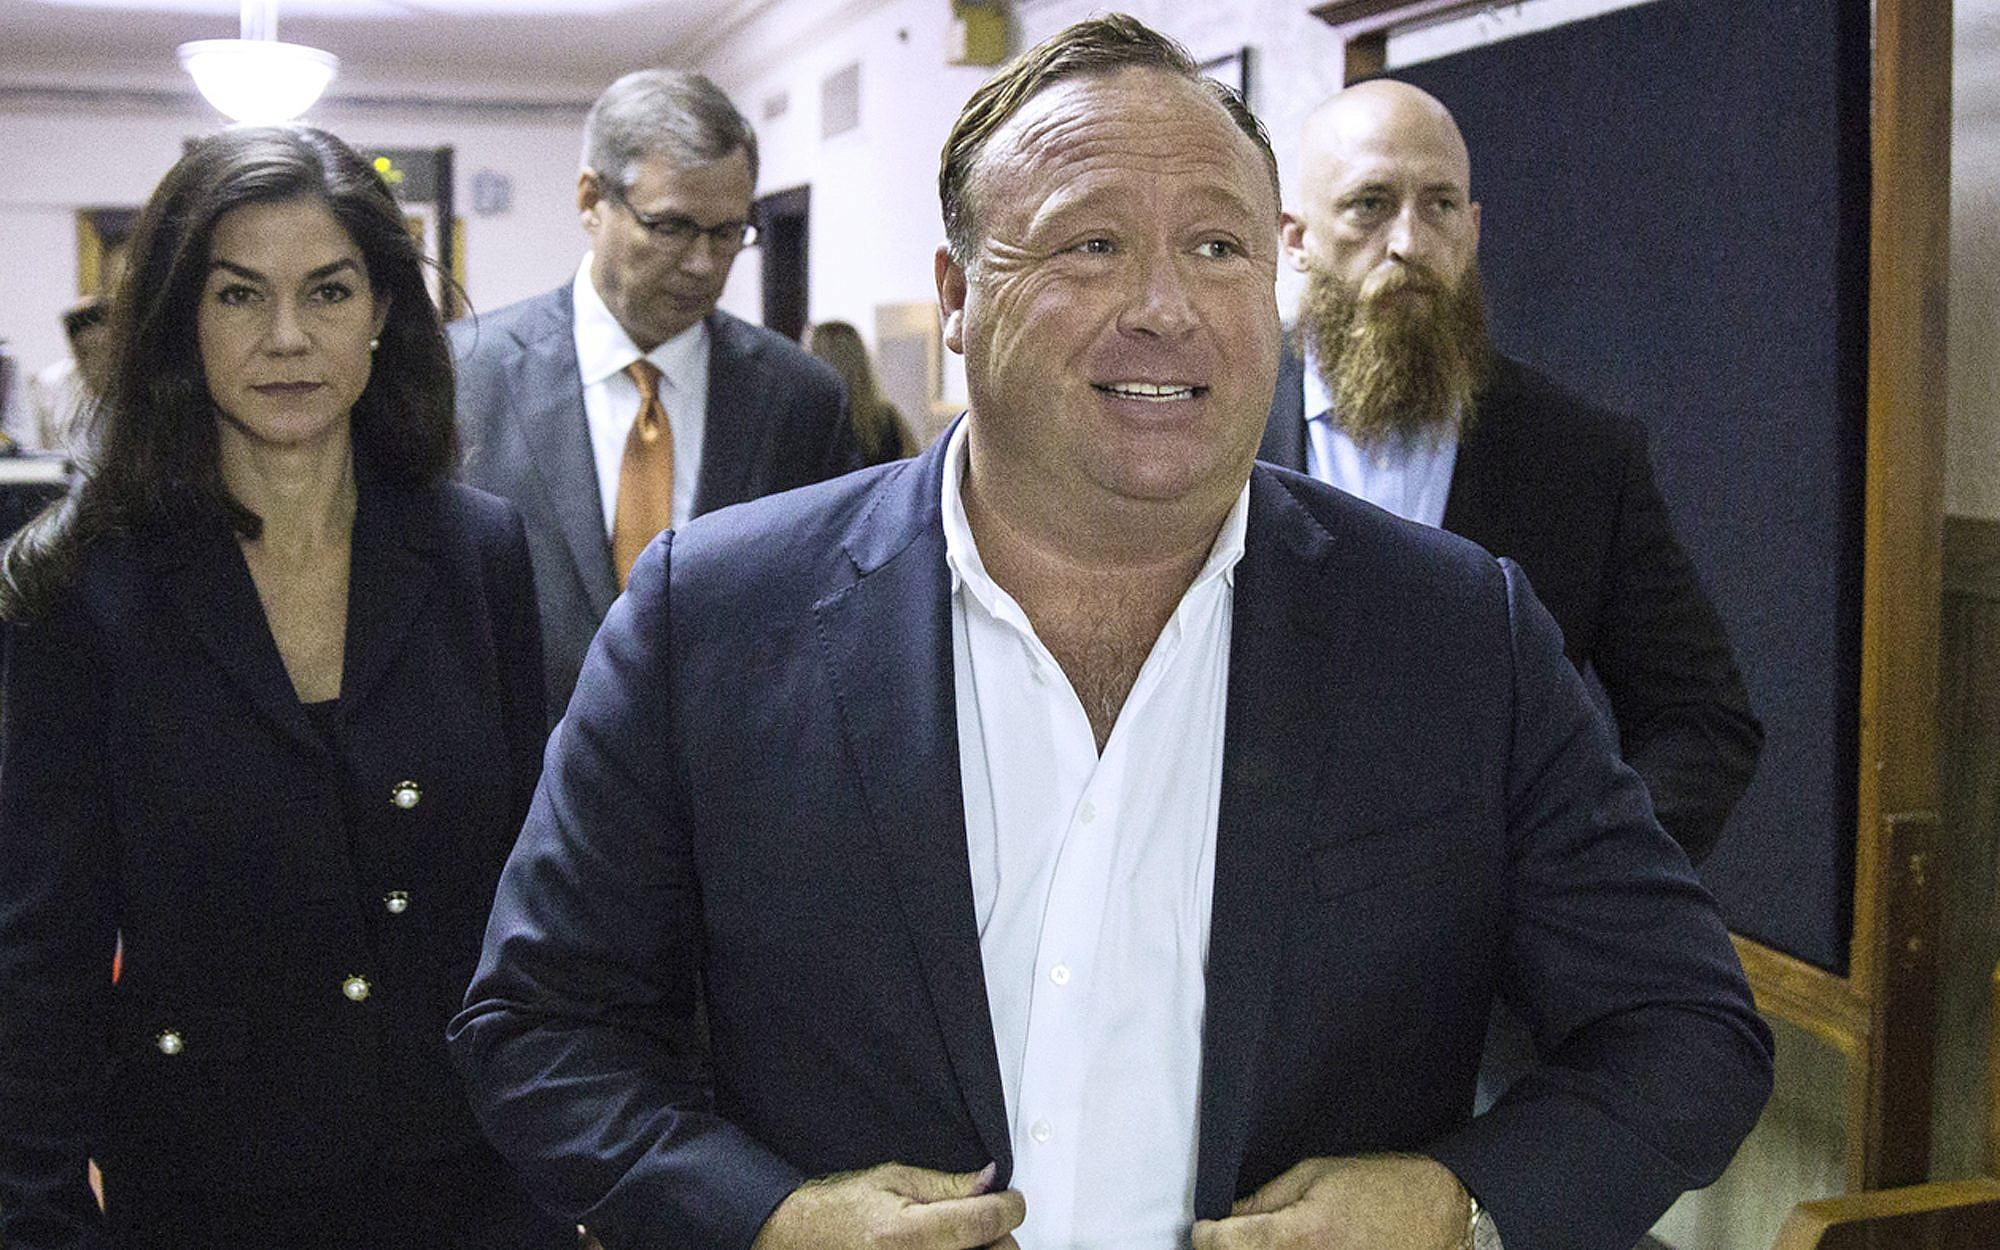 Alex Jones has been suspended from Facebook for 30 days